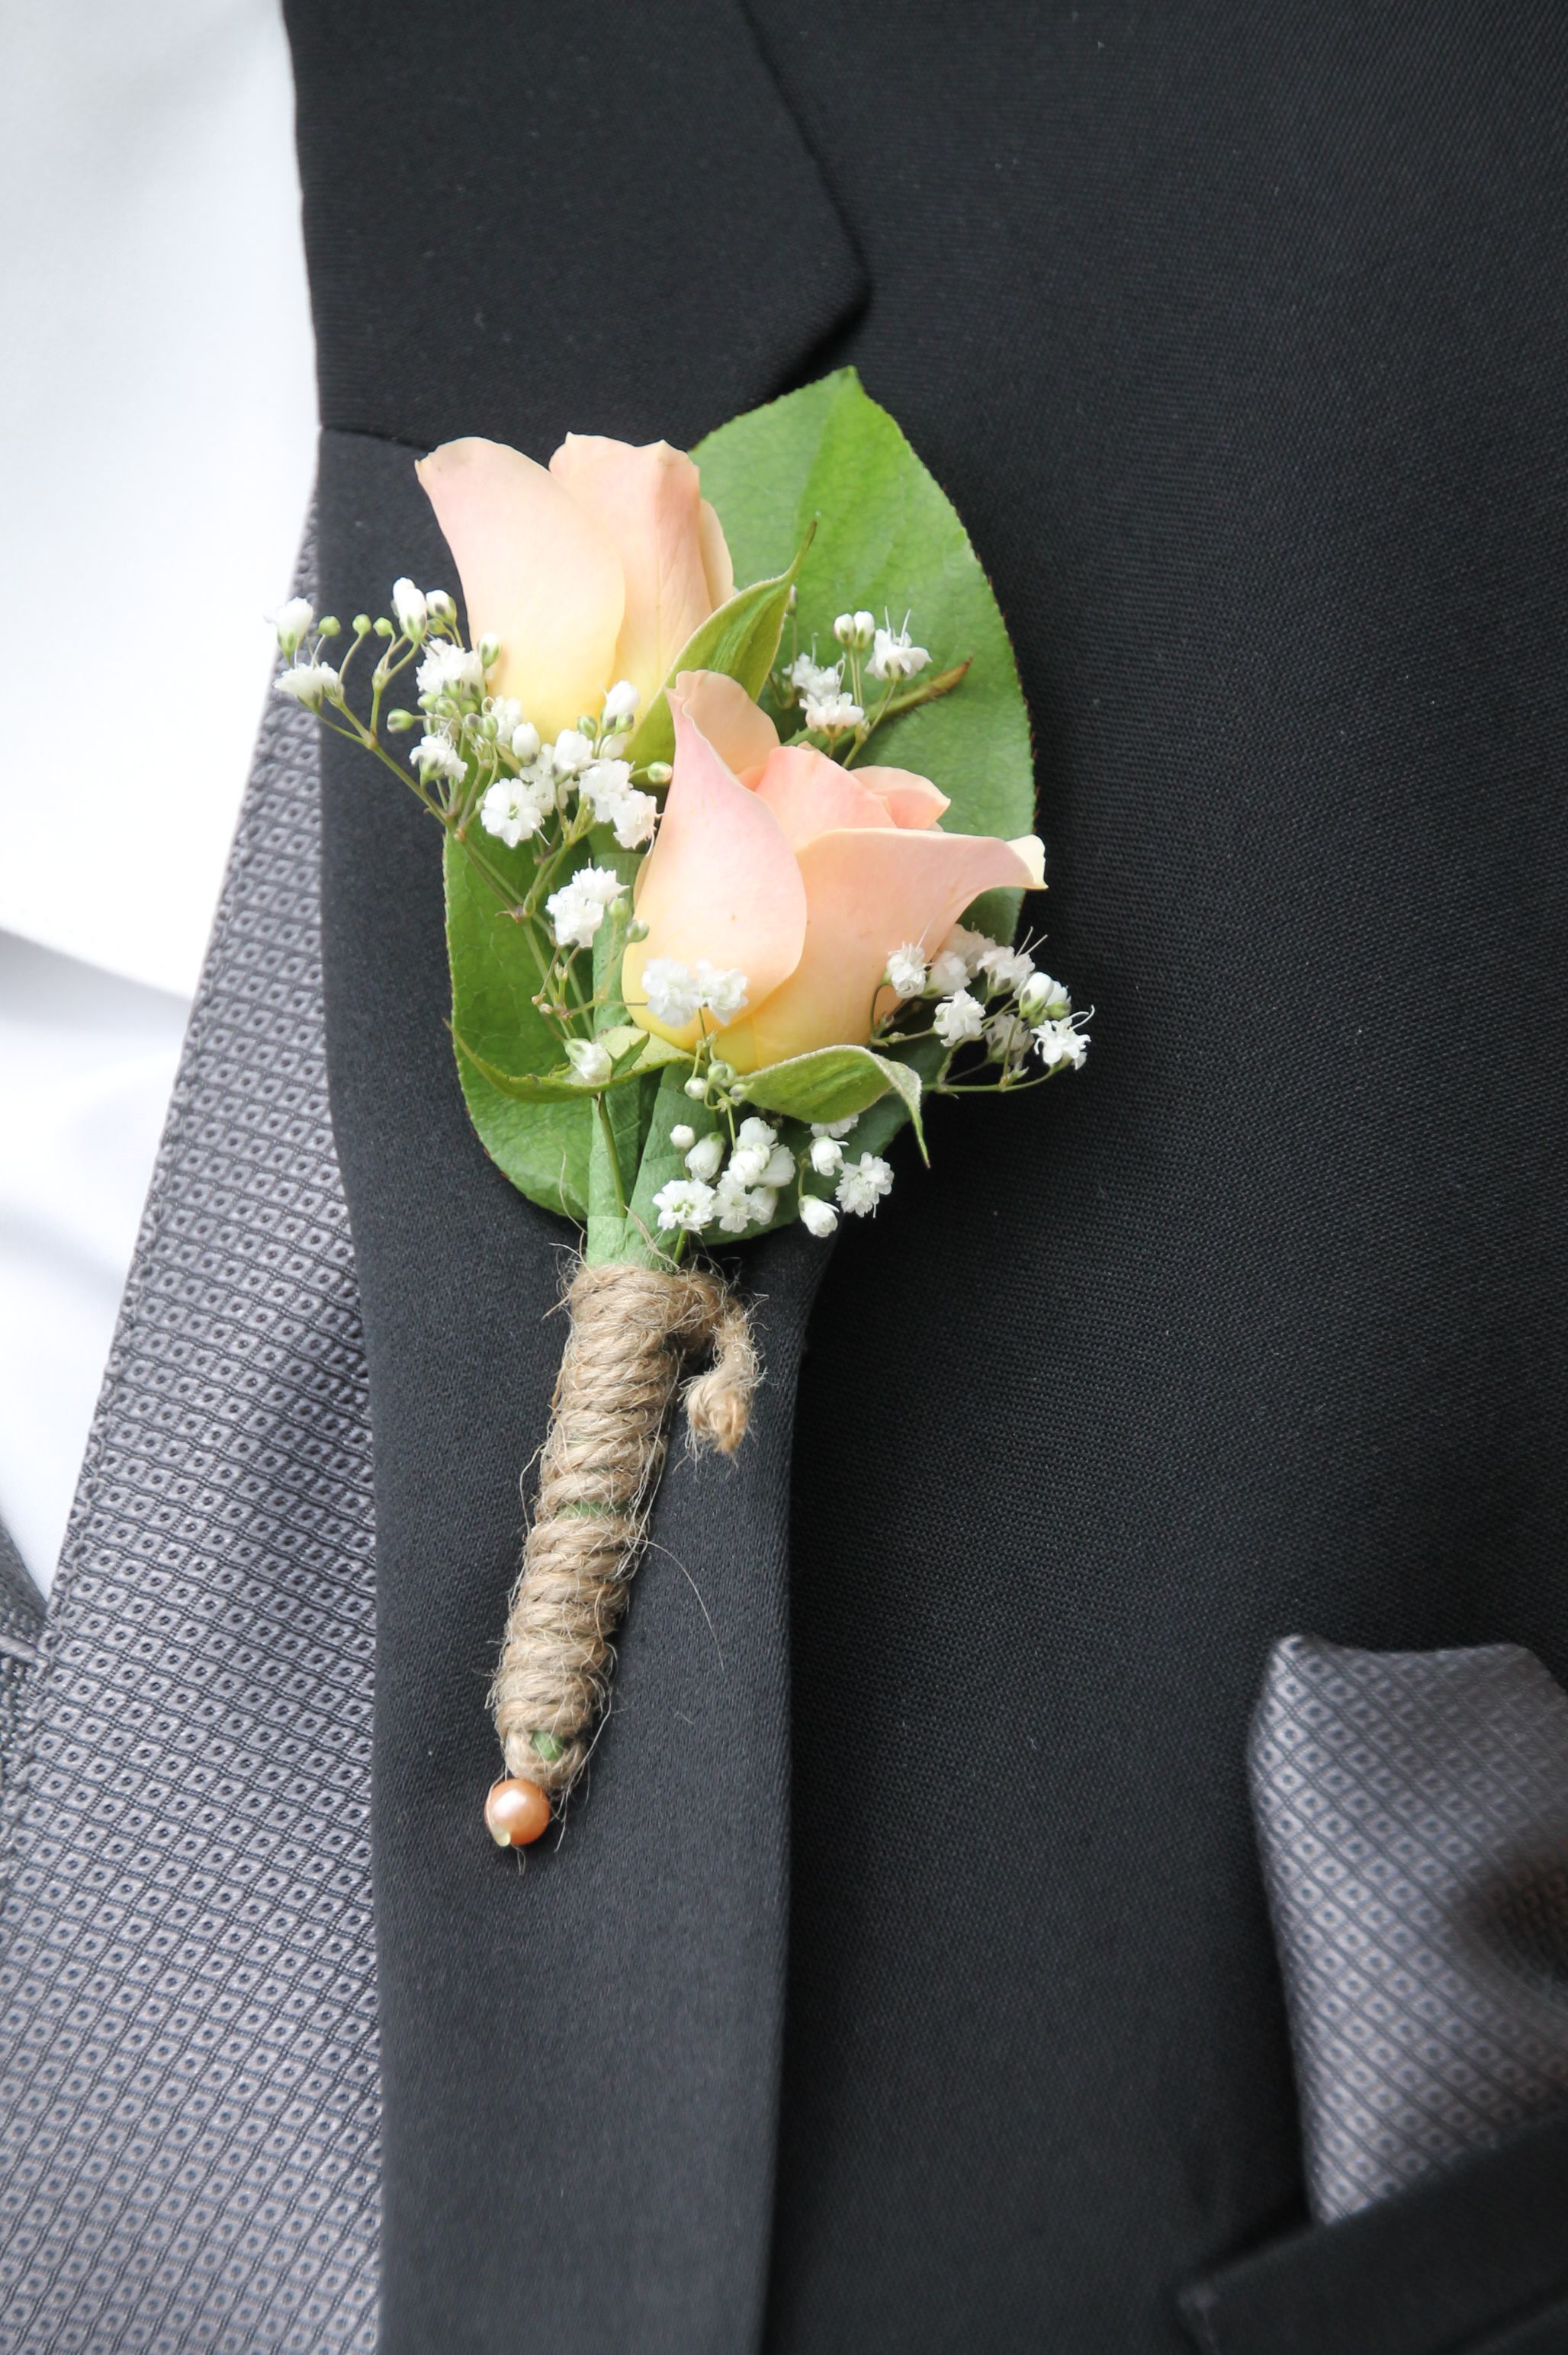 Peach Garden Rose Boutonniere boutonniere with peach/coral garden roses, wrapped with twine to